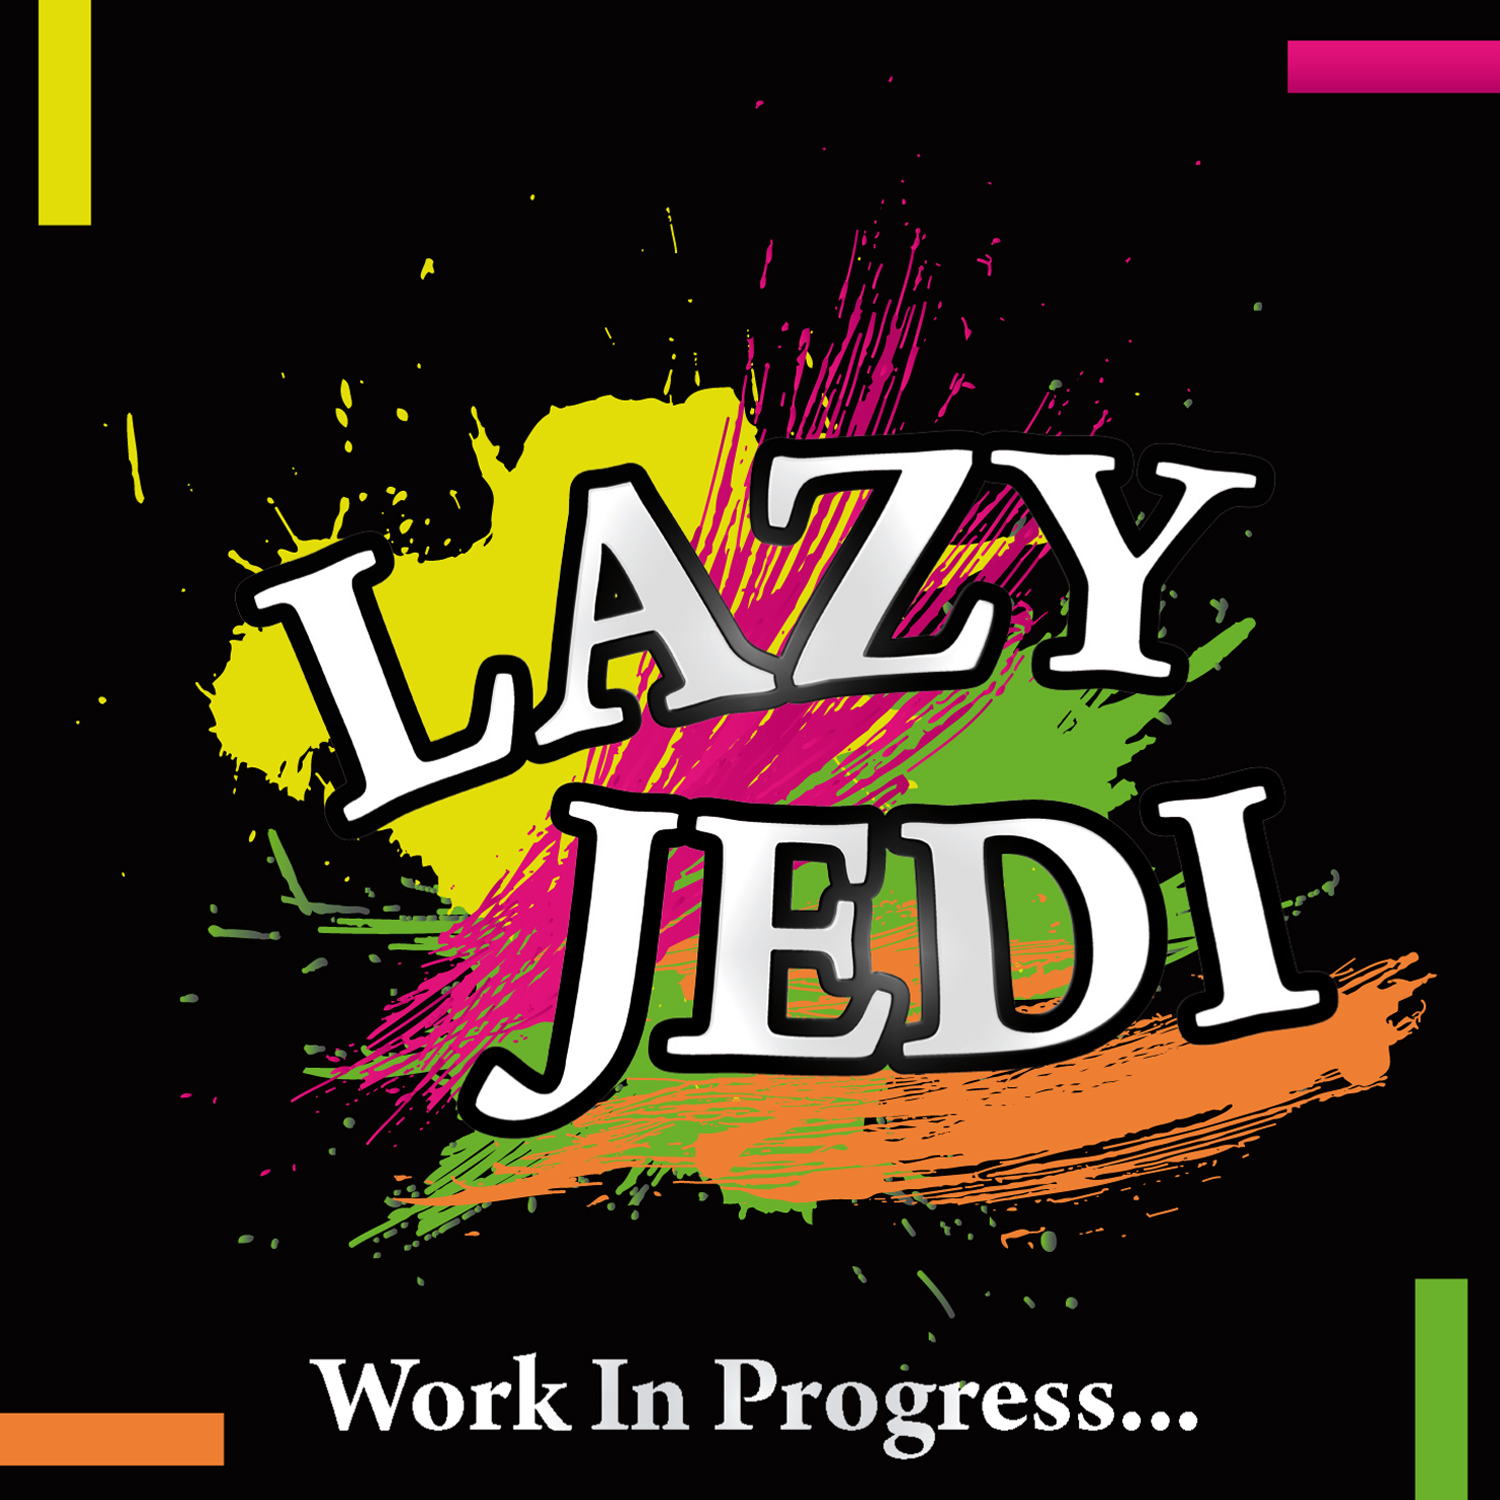 LAZY JEDI – Work In Progress